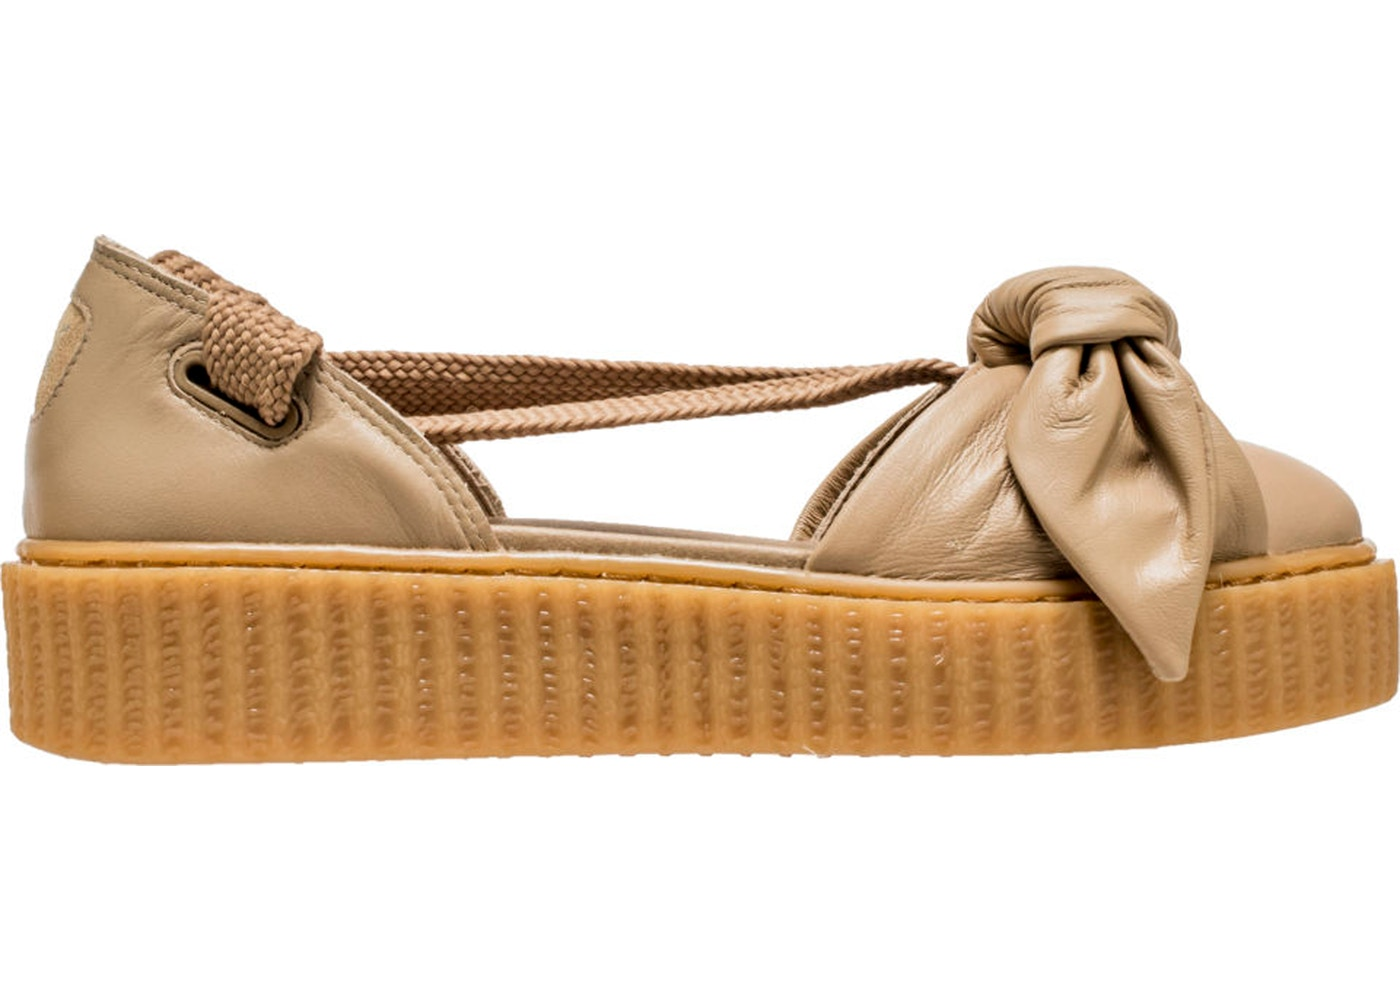 4f102e7be4c Puma Bow Creeper Sandal Rihanna Fenty Natural (W) - 365794-03